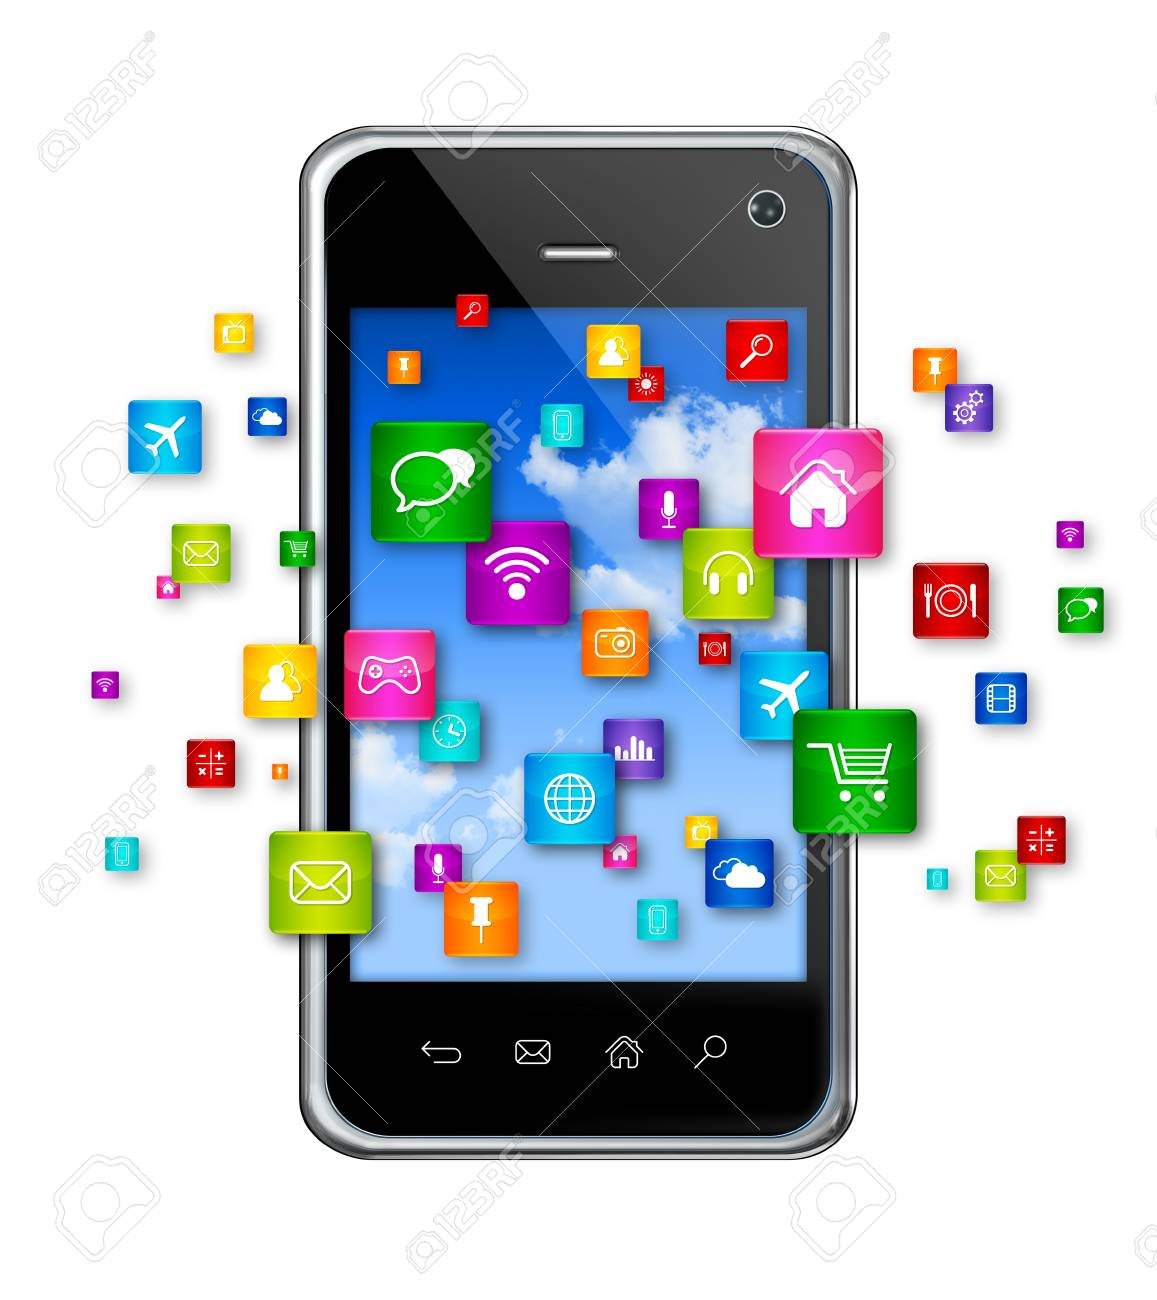 3d mobile phone with flying apps icons - isolated on white stock